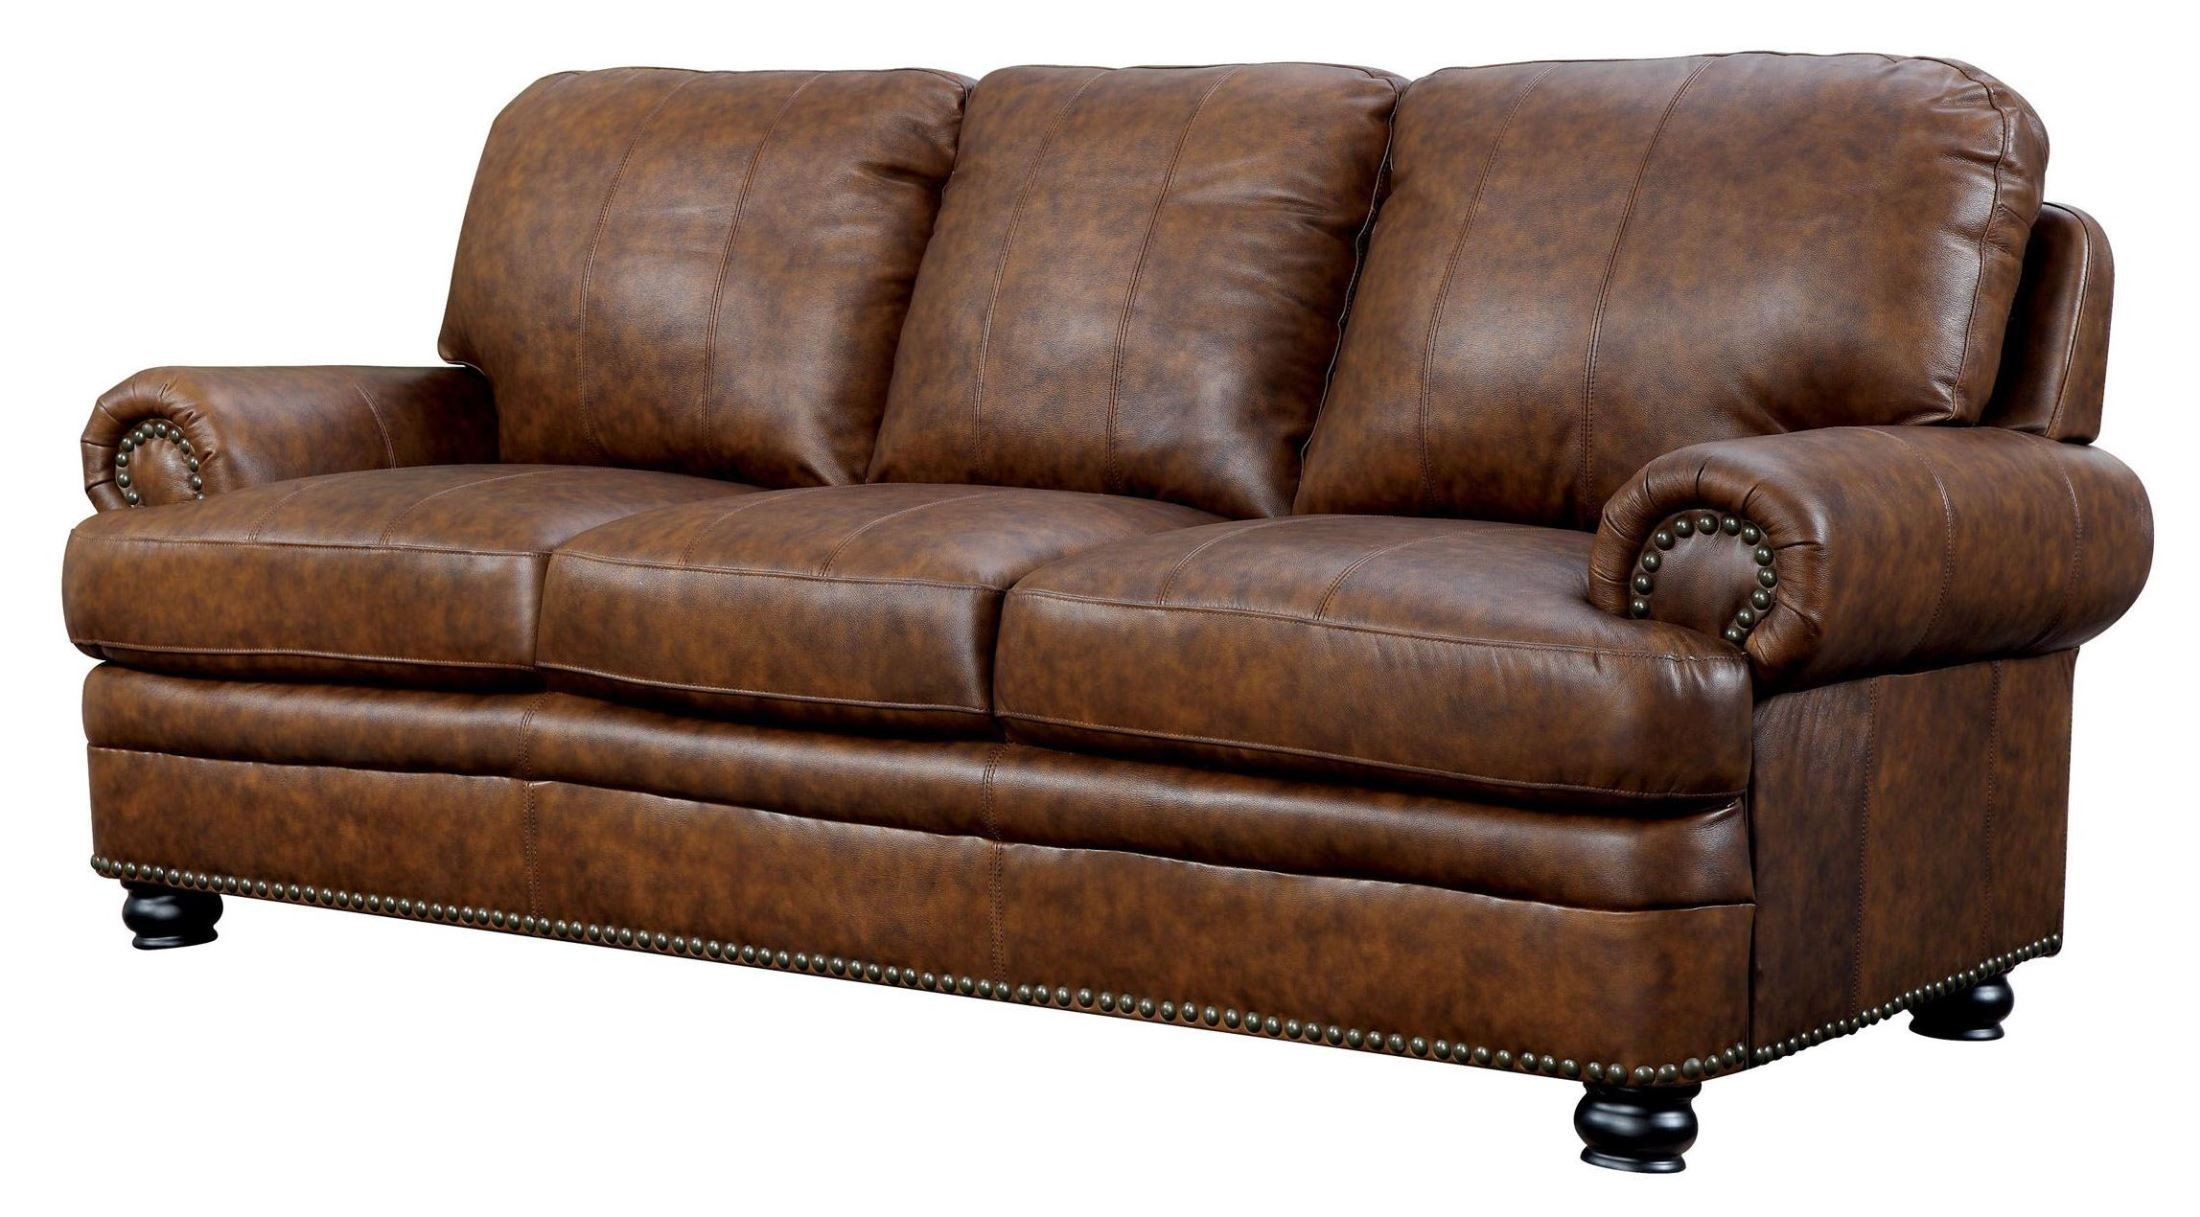 Rheinhardt Top Grain Leather Sofa From Furniture Of